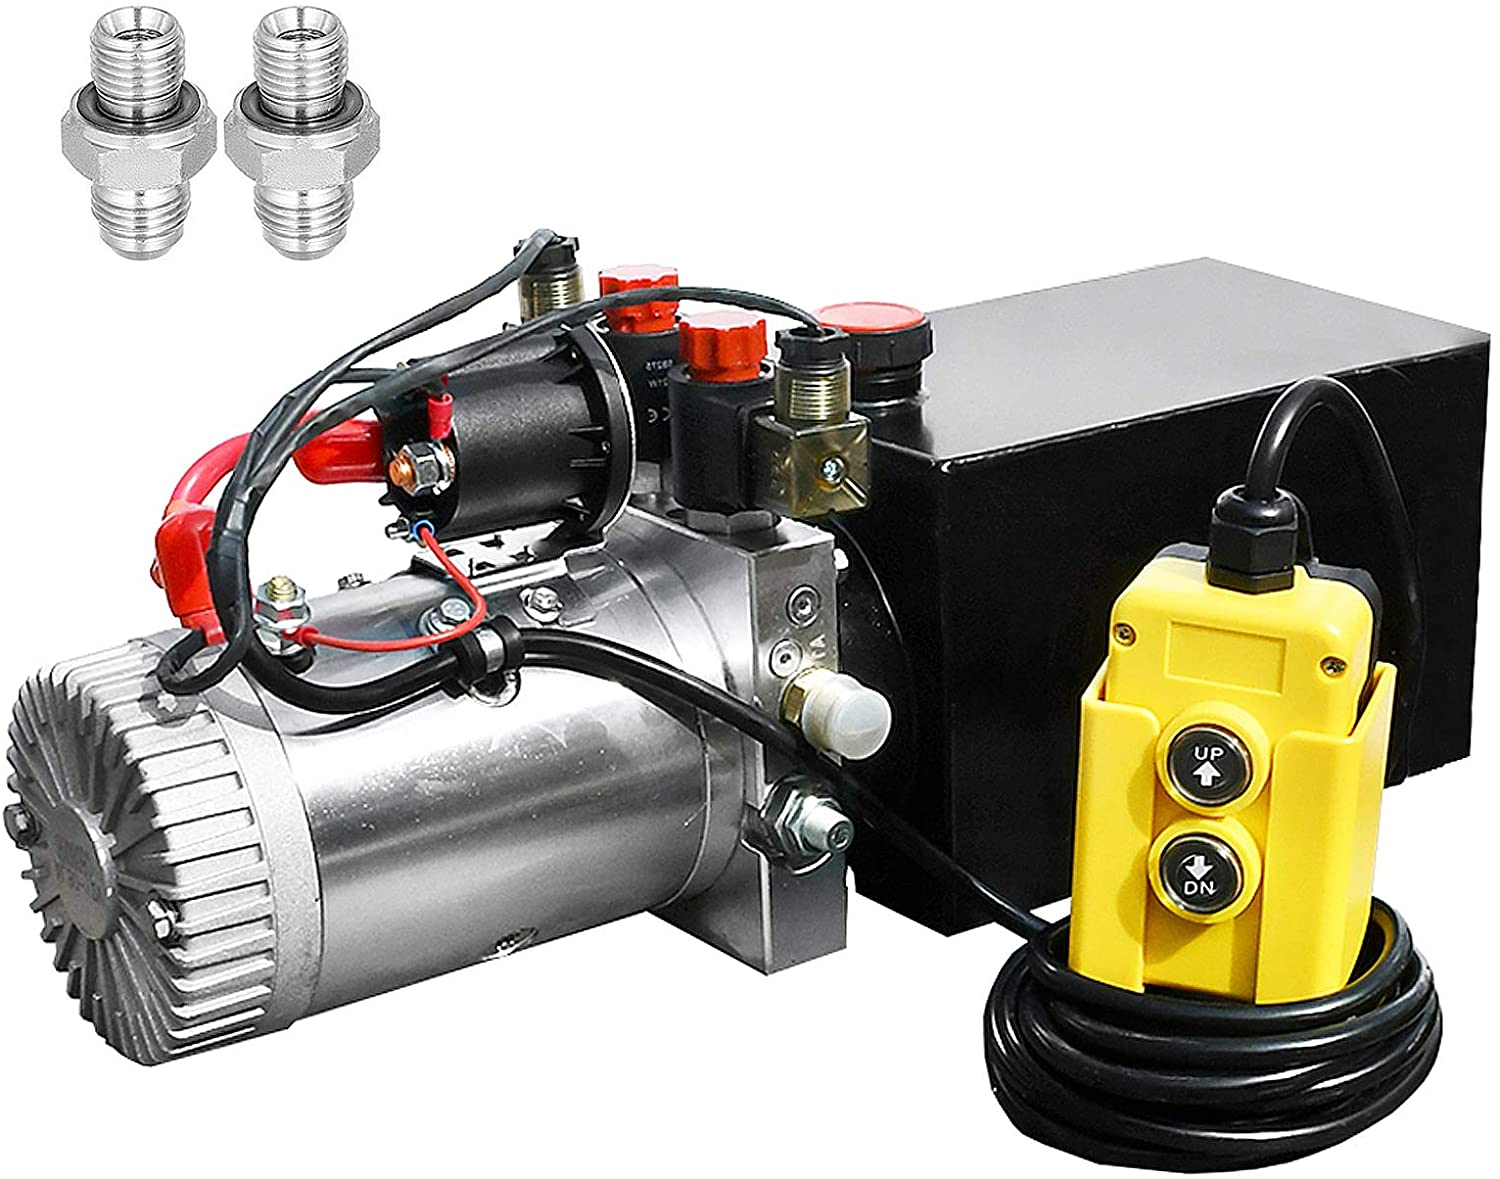 Fisters brand Double Acting Hydraulic Pump with a rating of 3200 PSI.